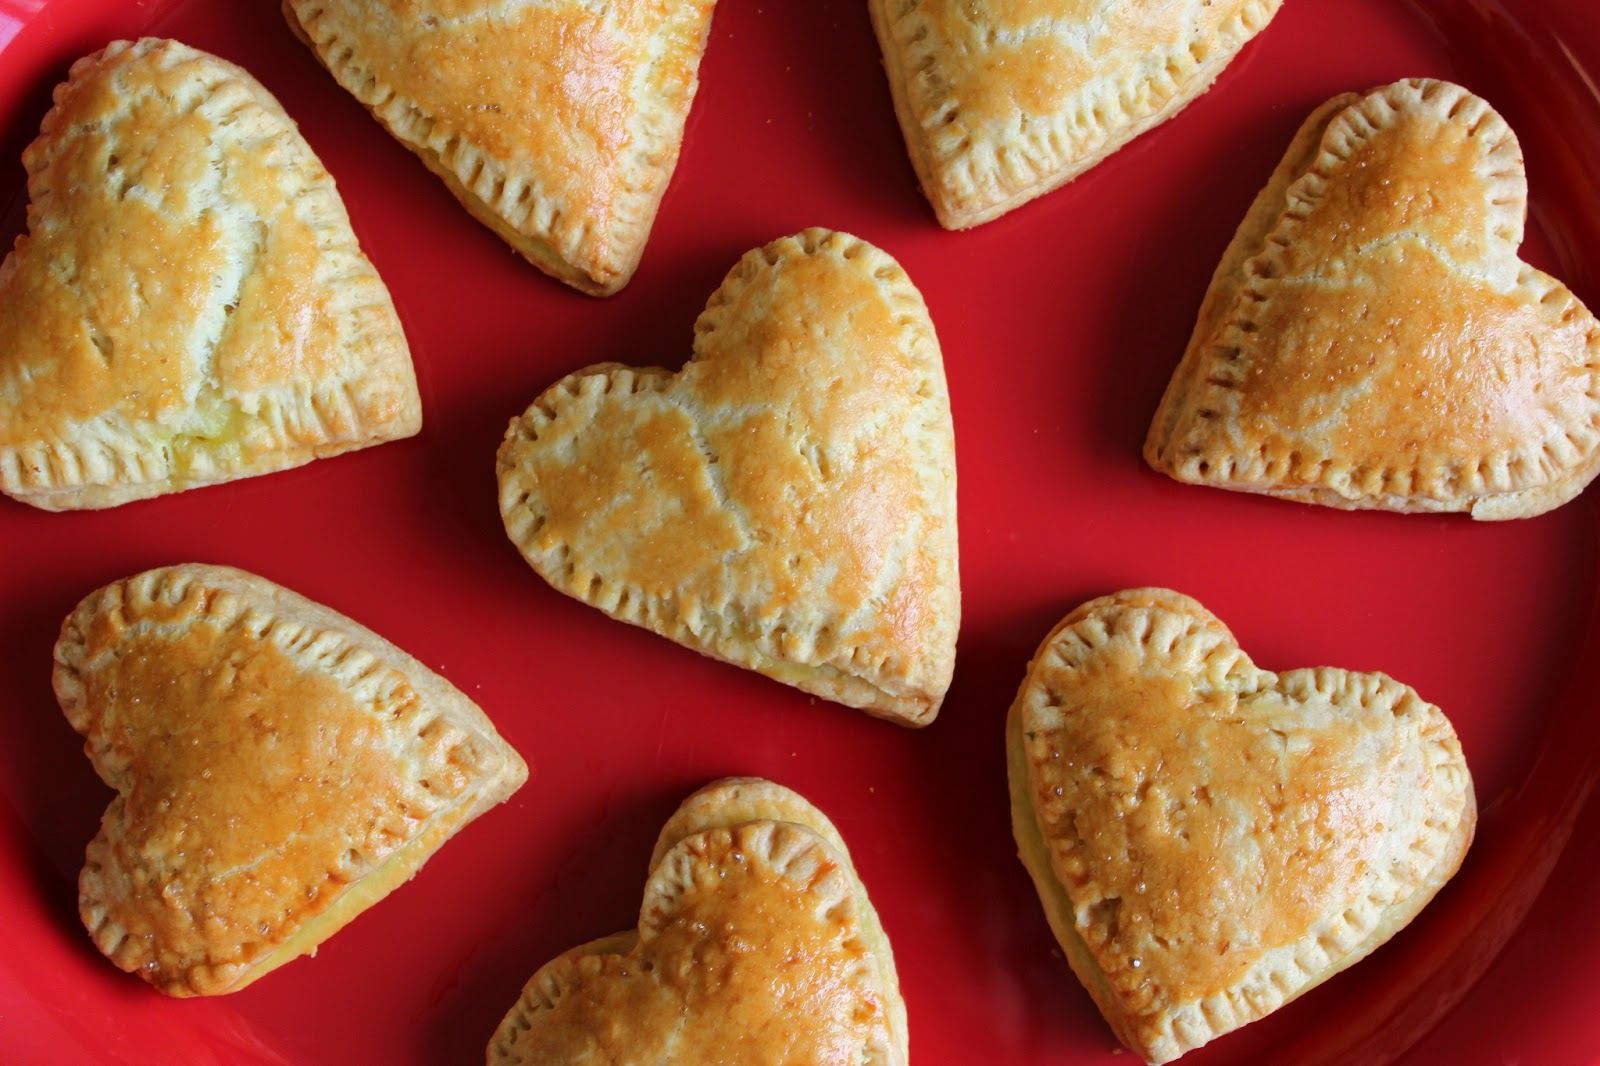 Heart Shaped Cheese Pies by Viva la Vida